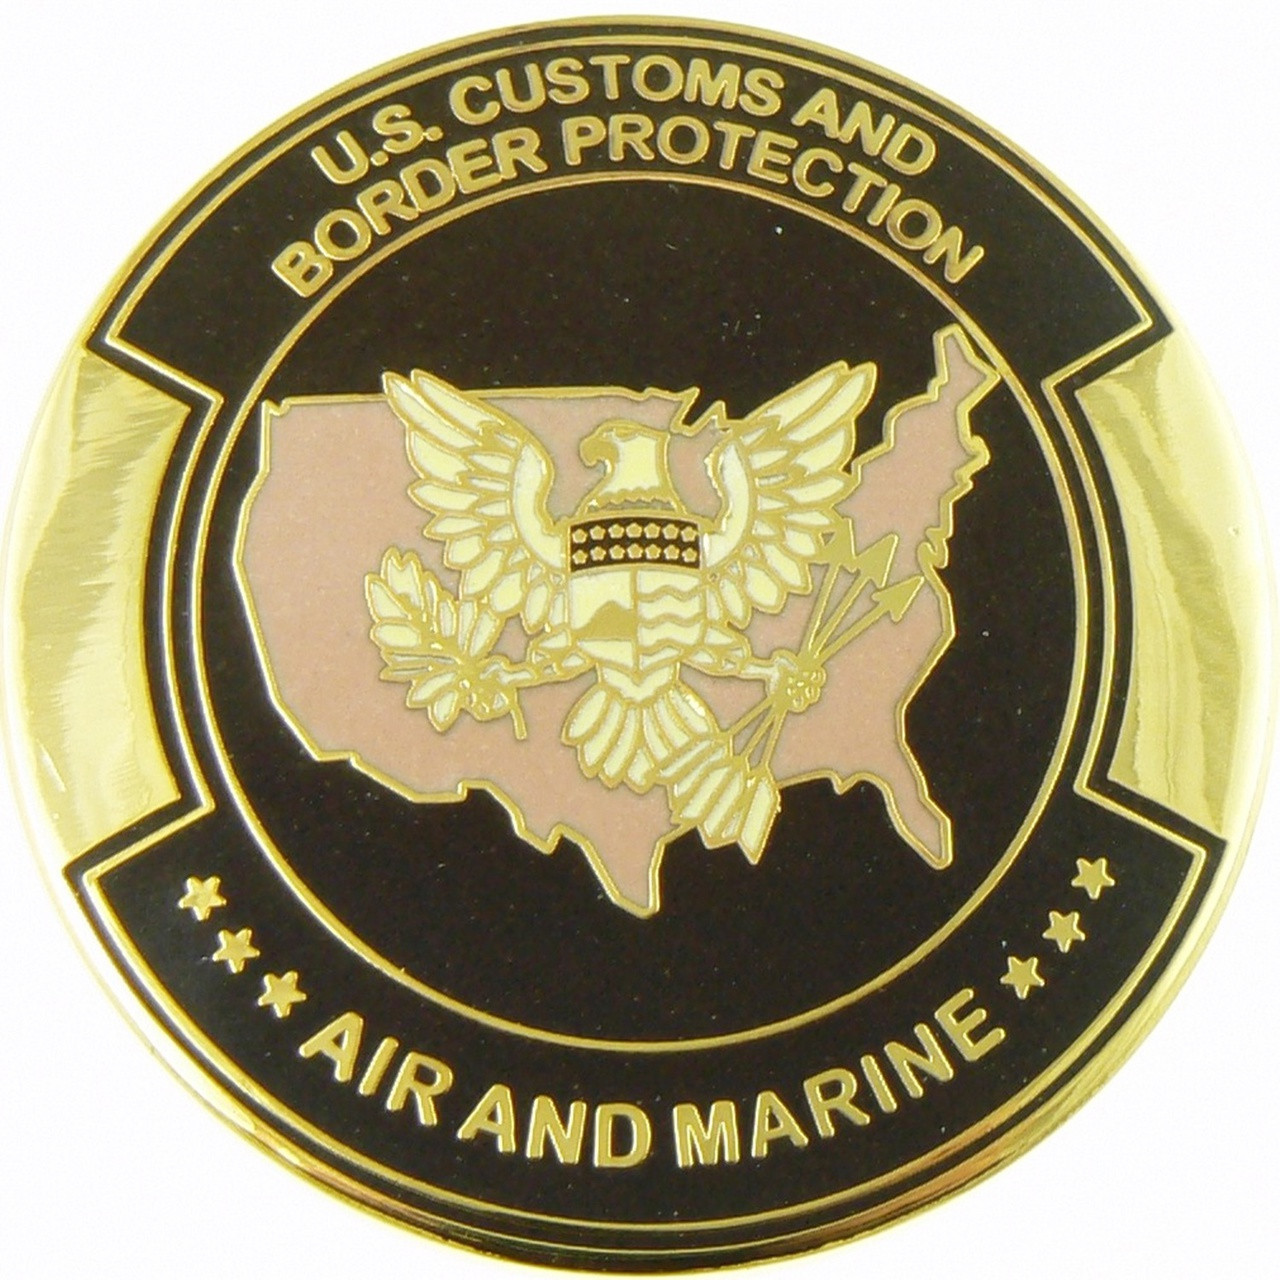 Office of Air and Marine Logo Medallion